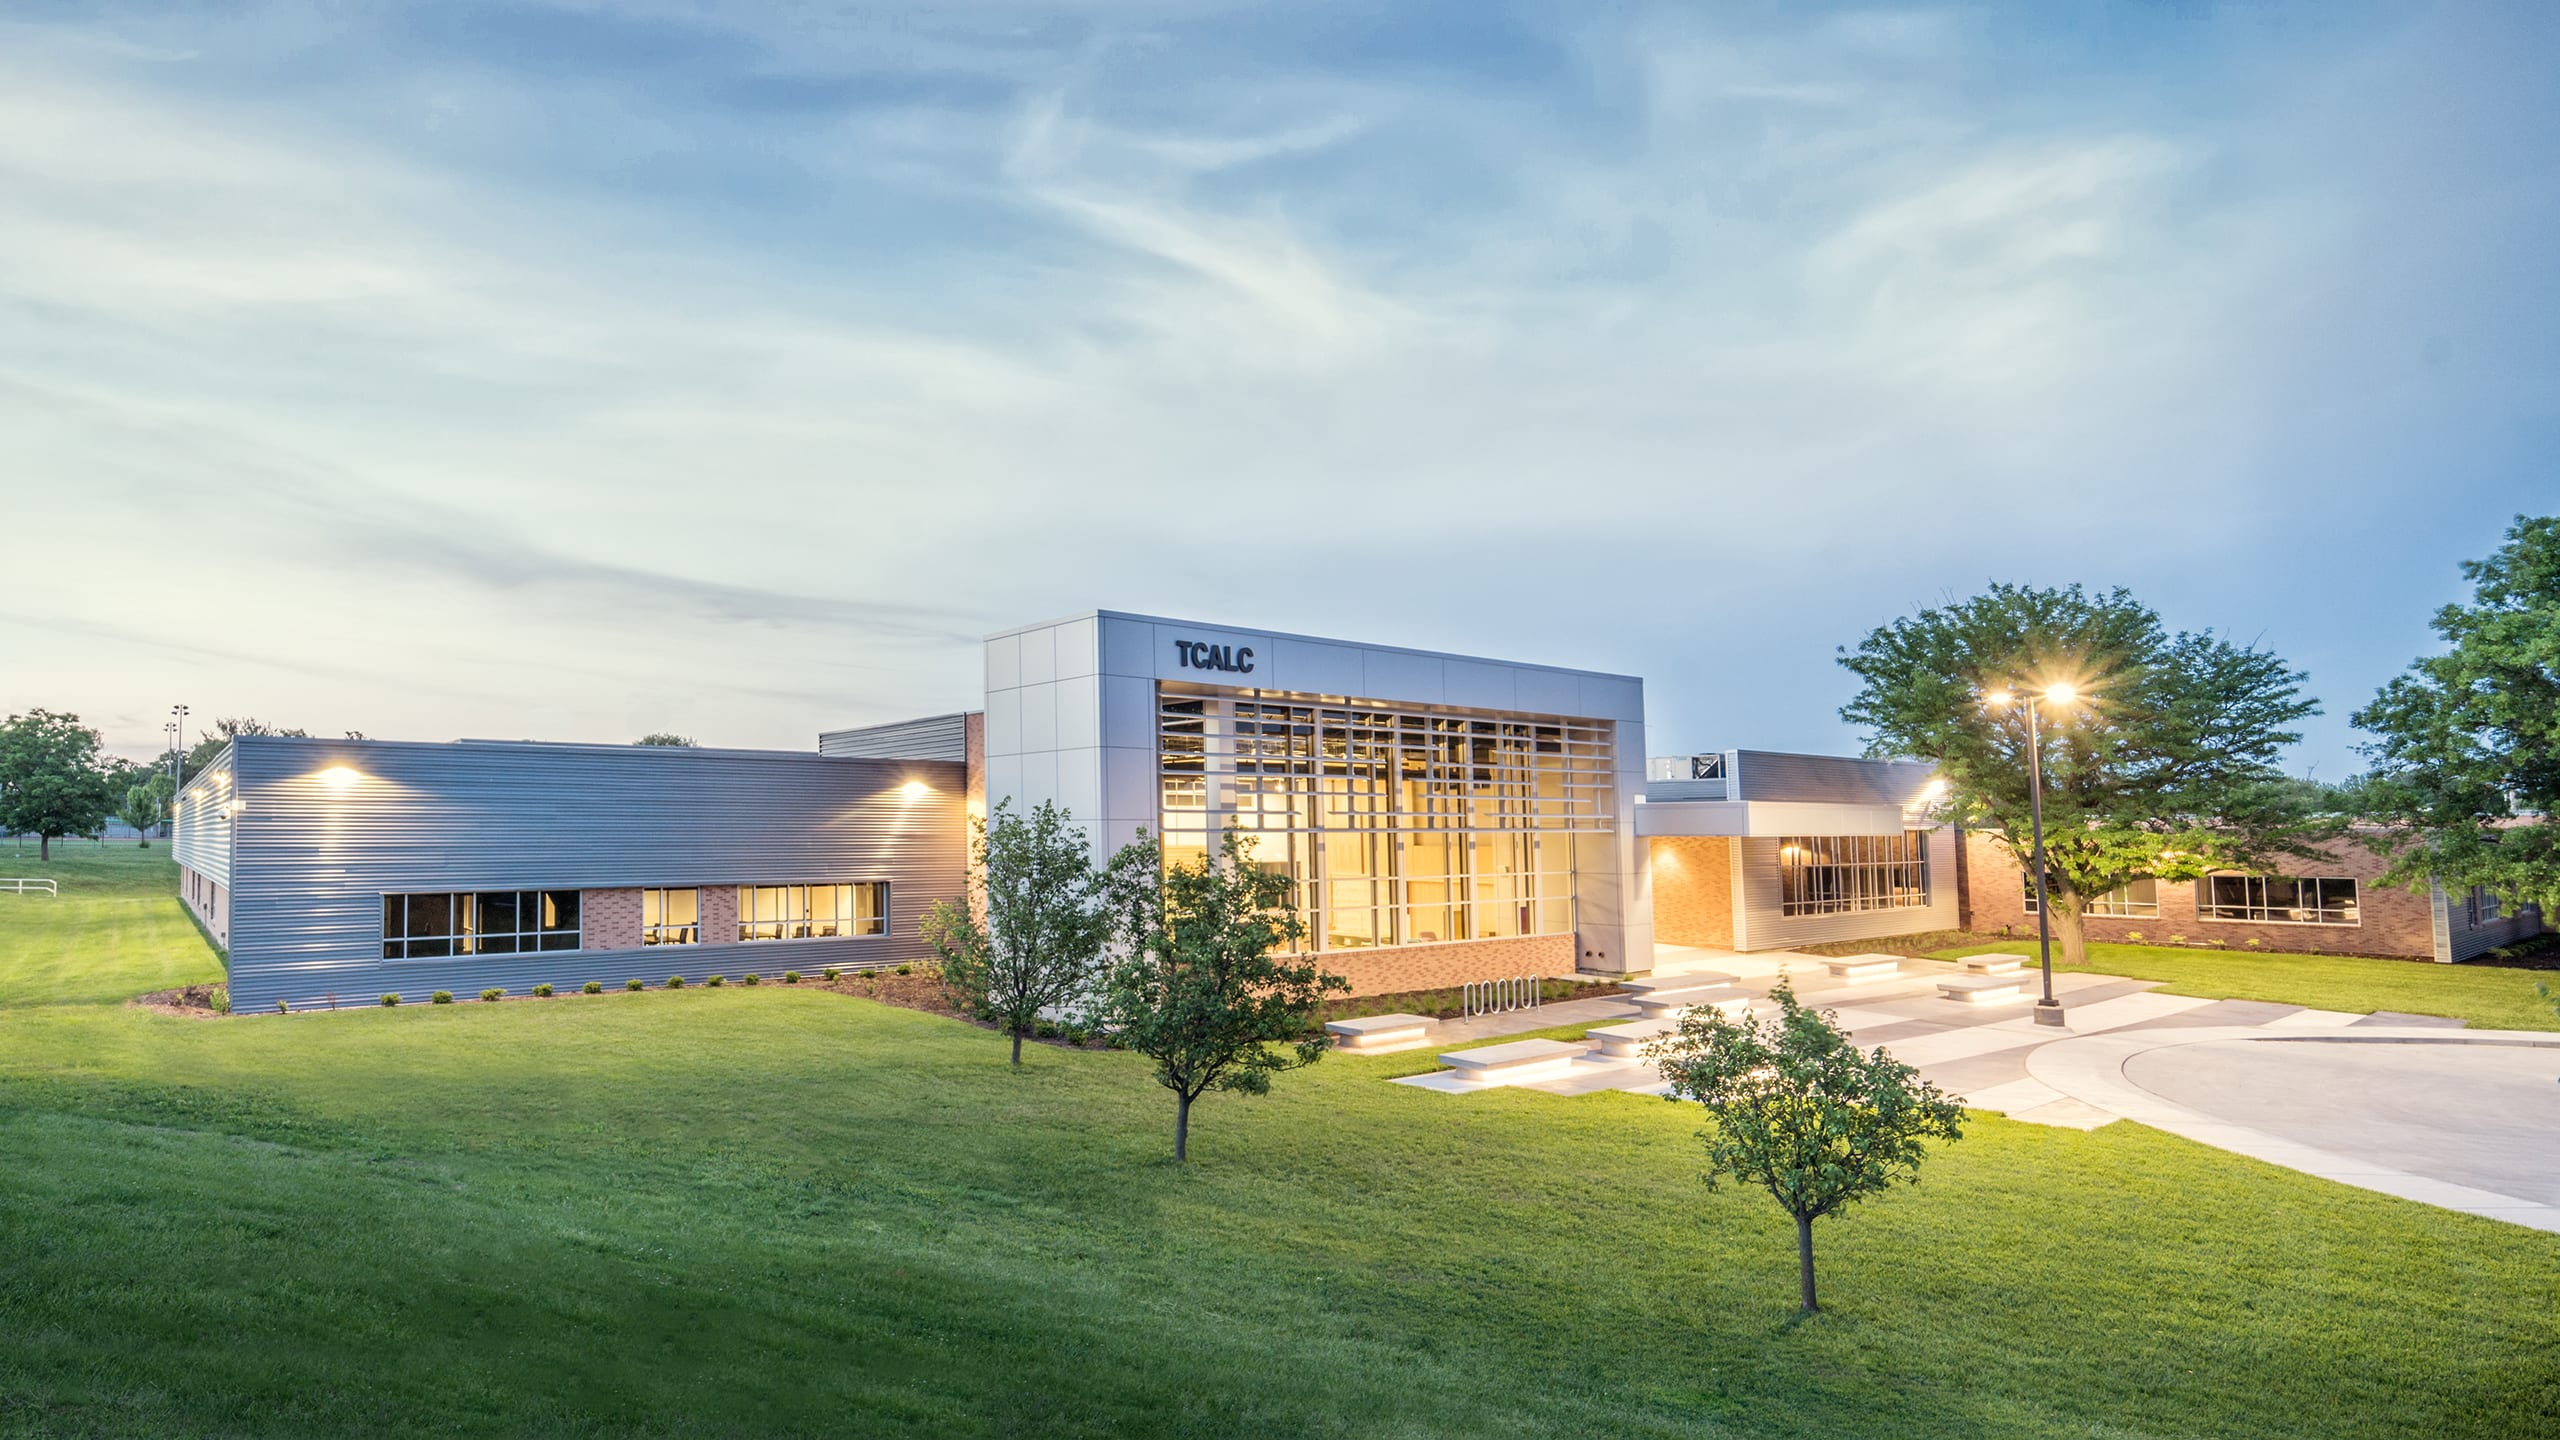 Topeka Center for Advanced Learning and Careers (TCALC) designed by Architect One